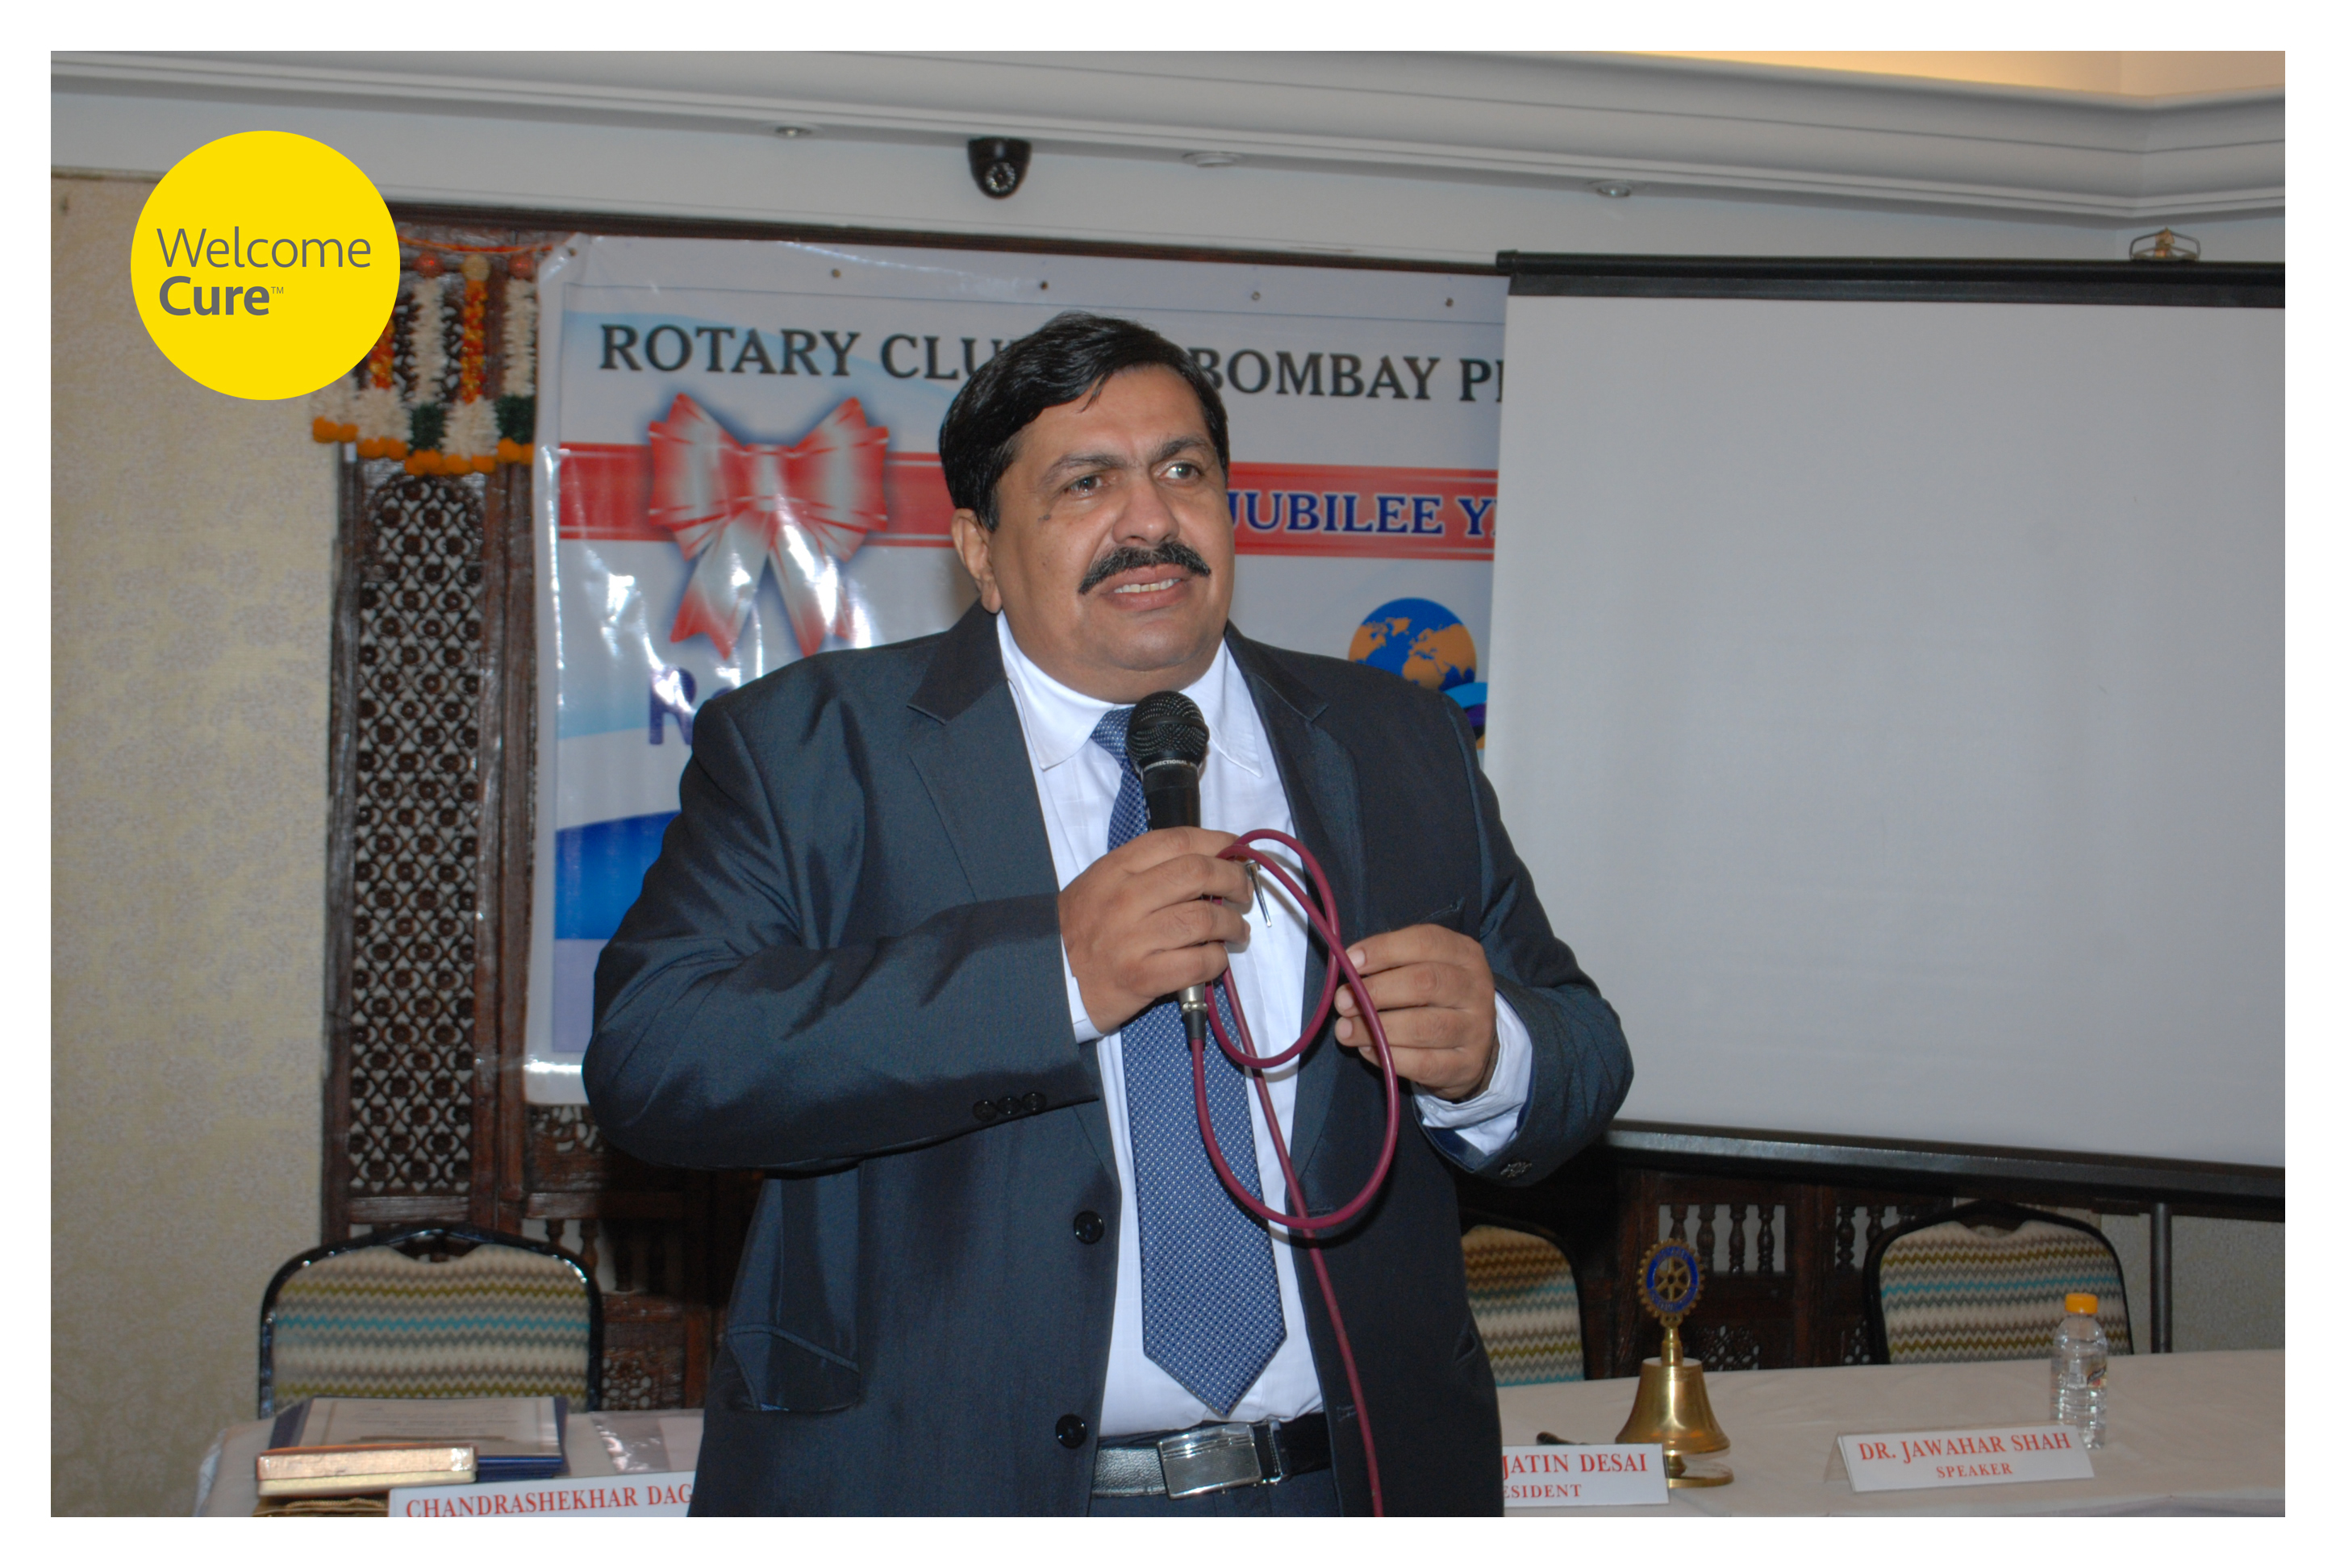 Rotary club event Image1